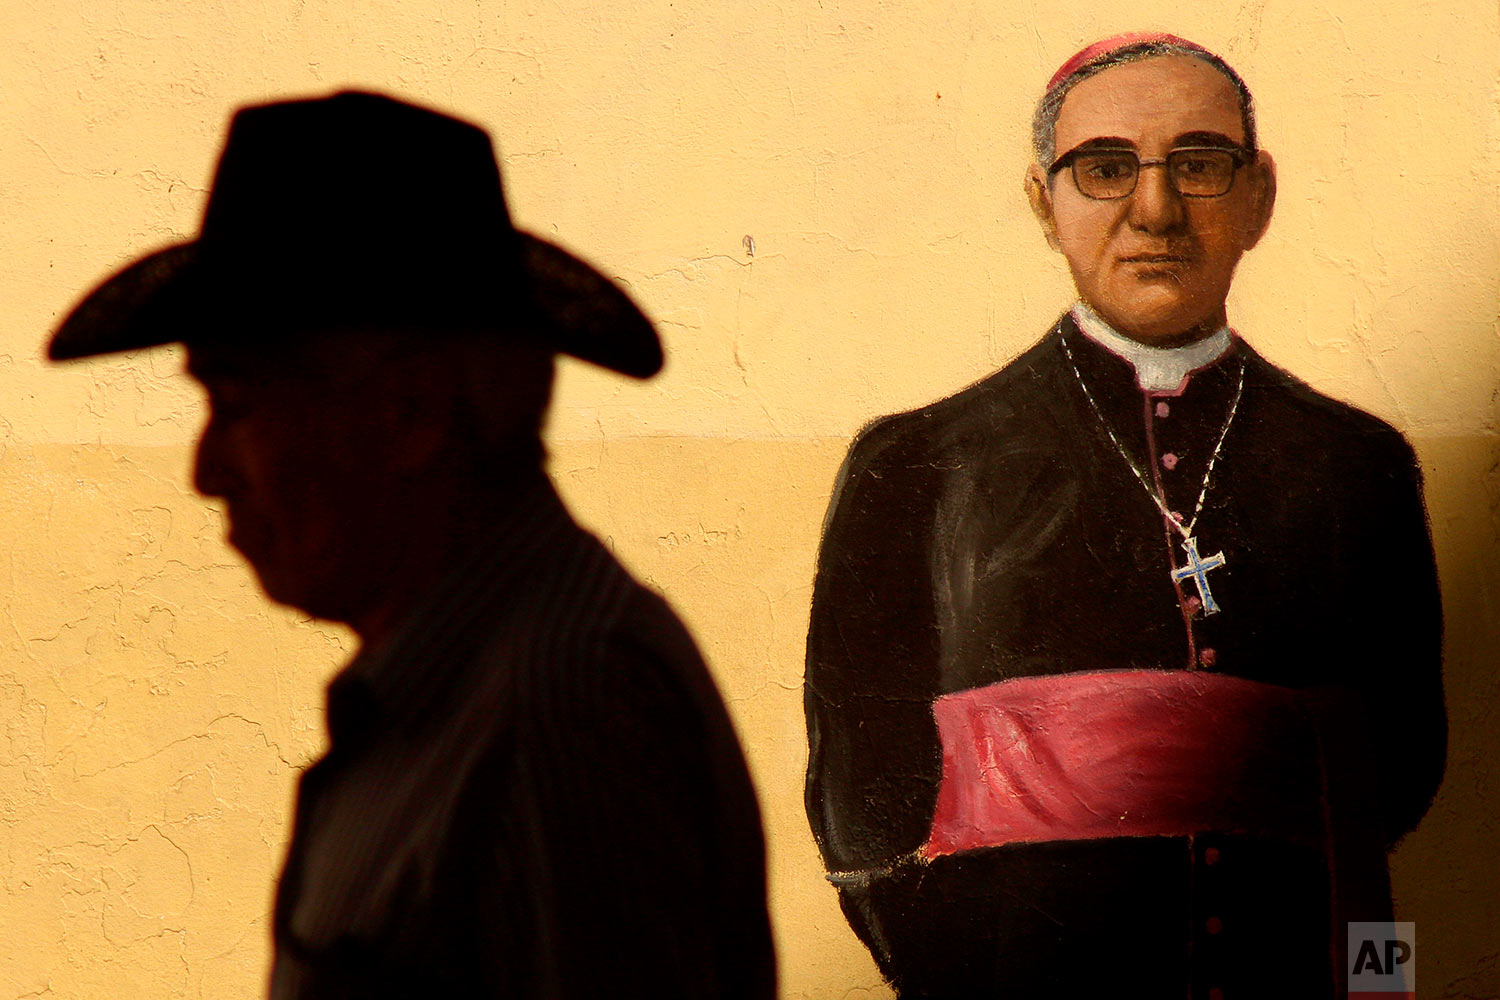 A man walks past a mural of late Archbishop Oscar Arnulfo Romero outside the Metropolitan Cathedral where Mass was offered to mark the 38th anniversary of the archbishop's death, in San Salvador, El Salvador, March 24, 2018. Pope Francis declared earlier this month that the churchman who became a hero for standing up for the poor and oppressed should be canonized along with the reformer Pope Paul VI. (AP Photo/Salvador Melendez)